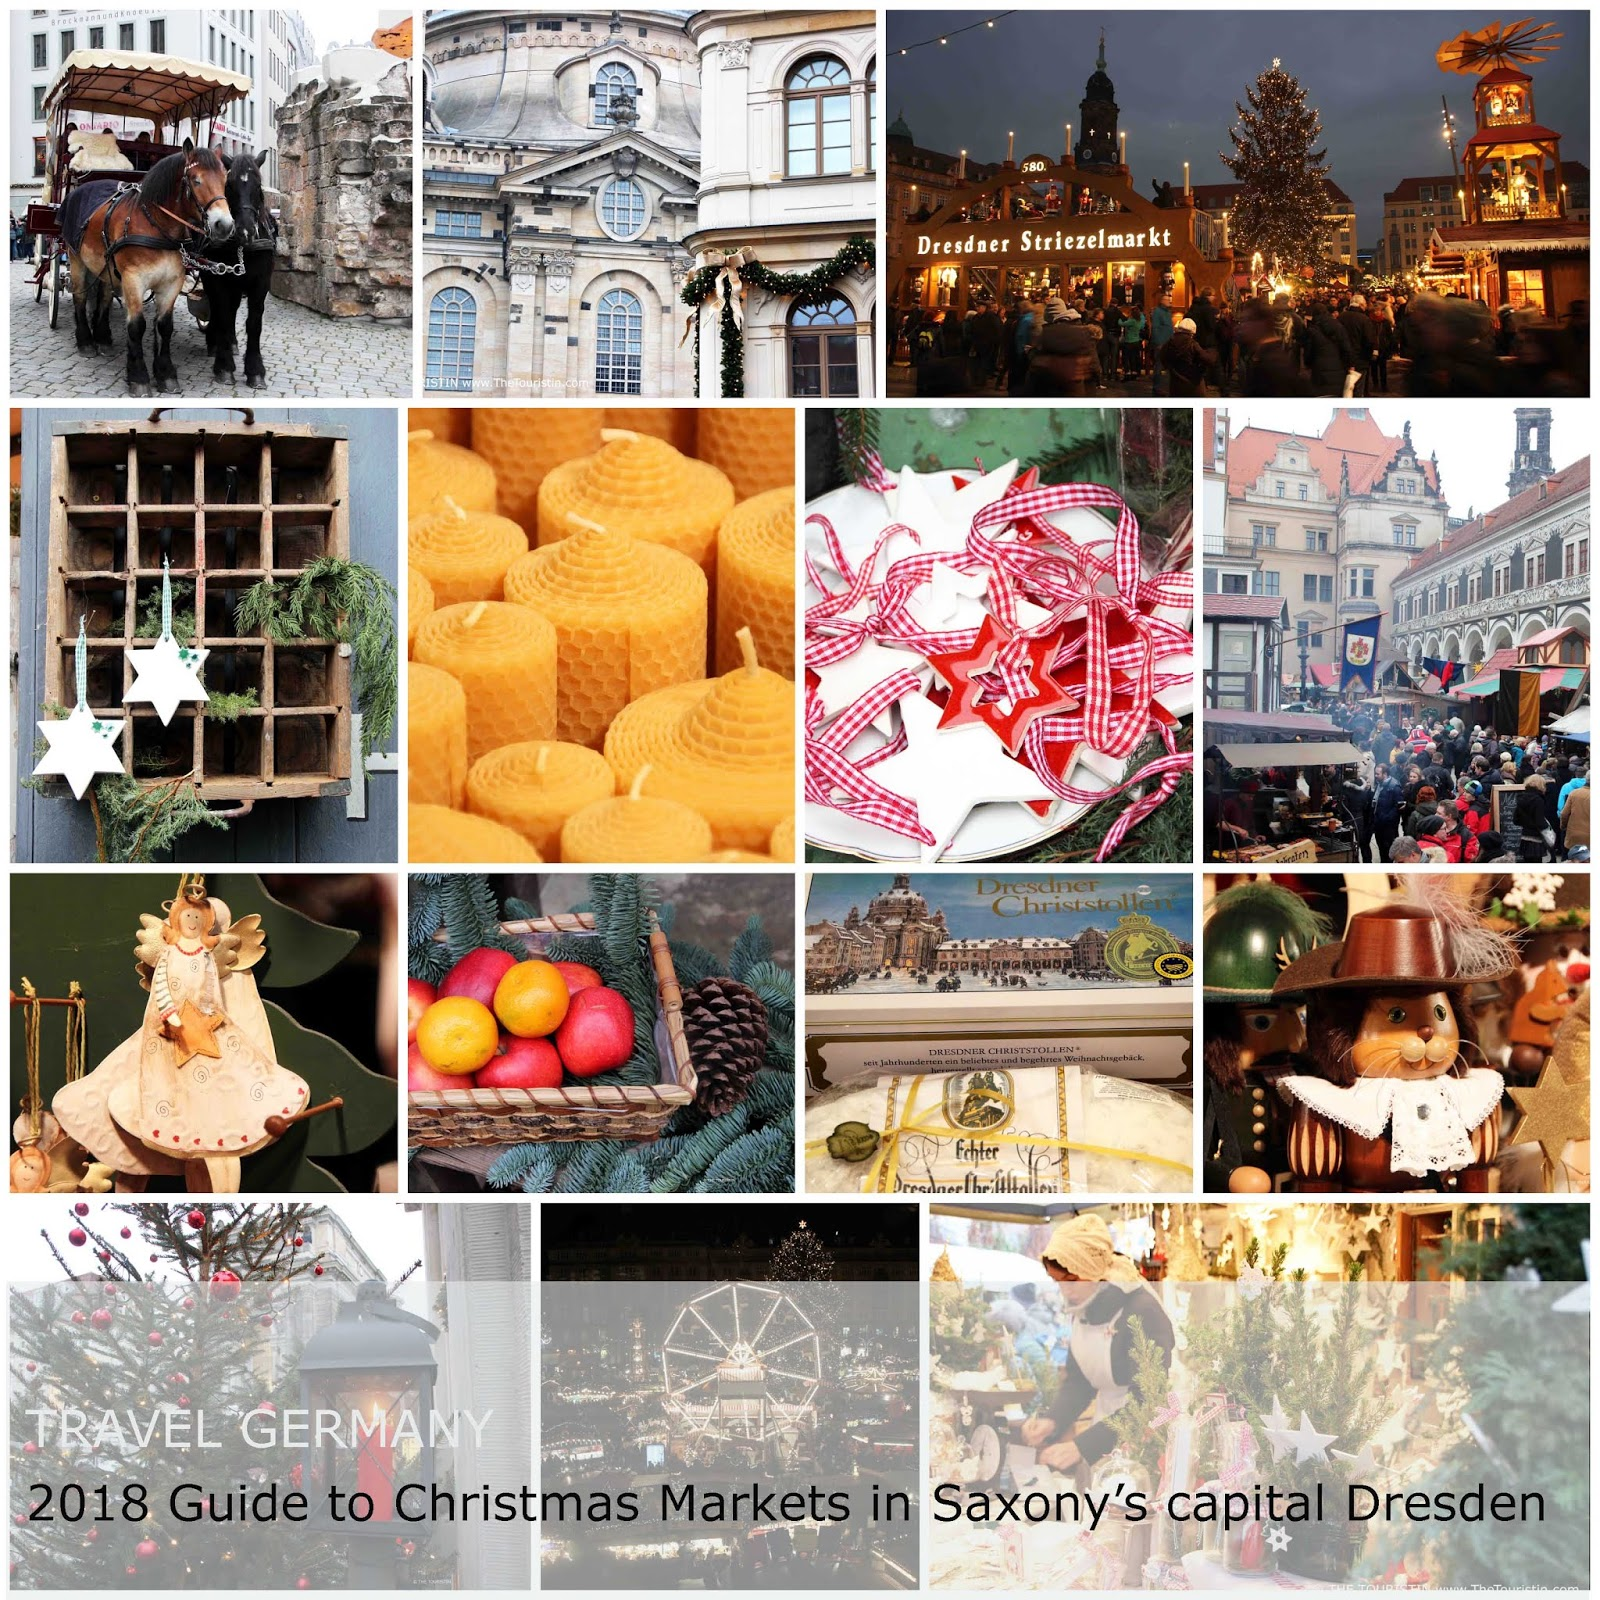 Weihnachtsgebäck 2019.The Touristin 2018 Guide To Christmas Markets In Saxony S Capital